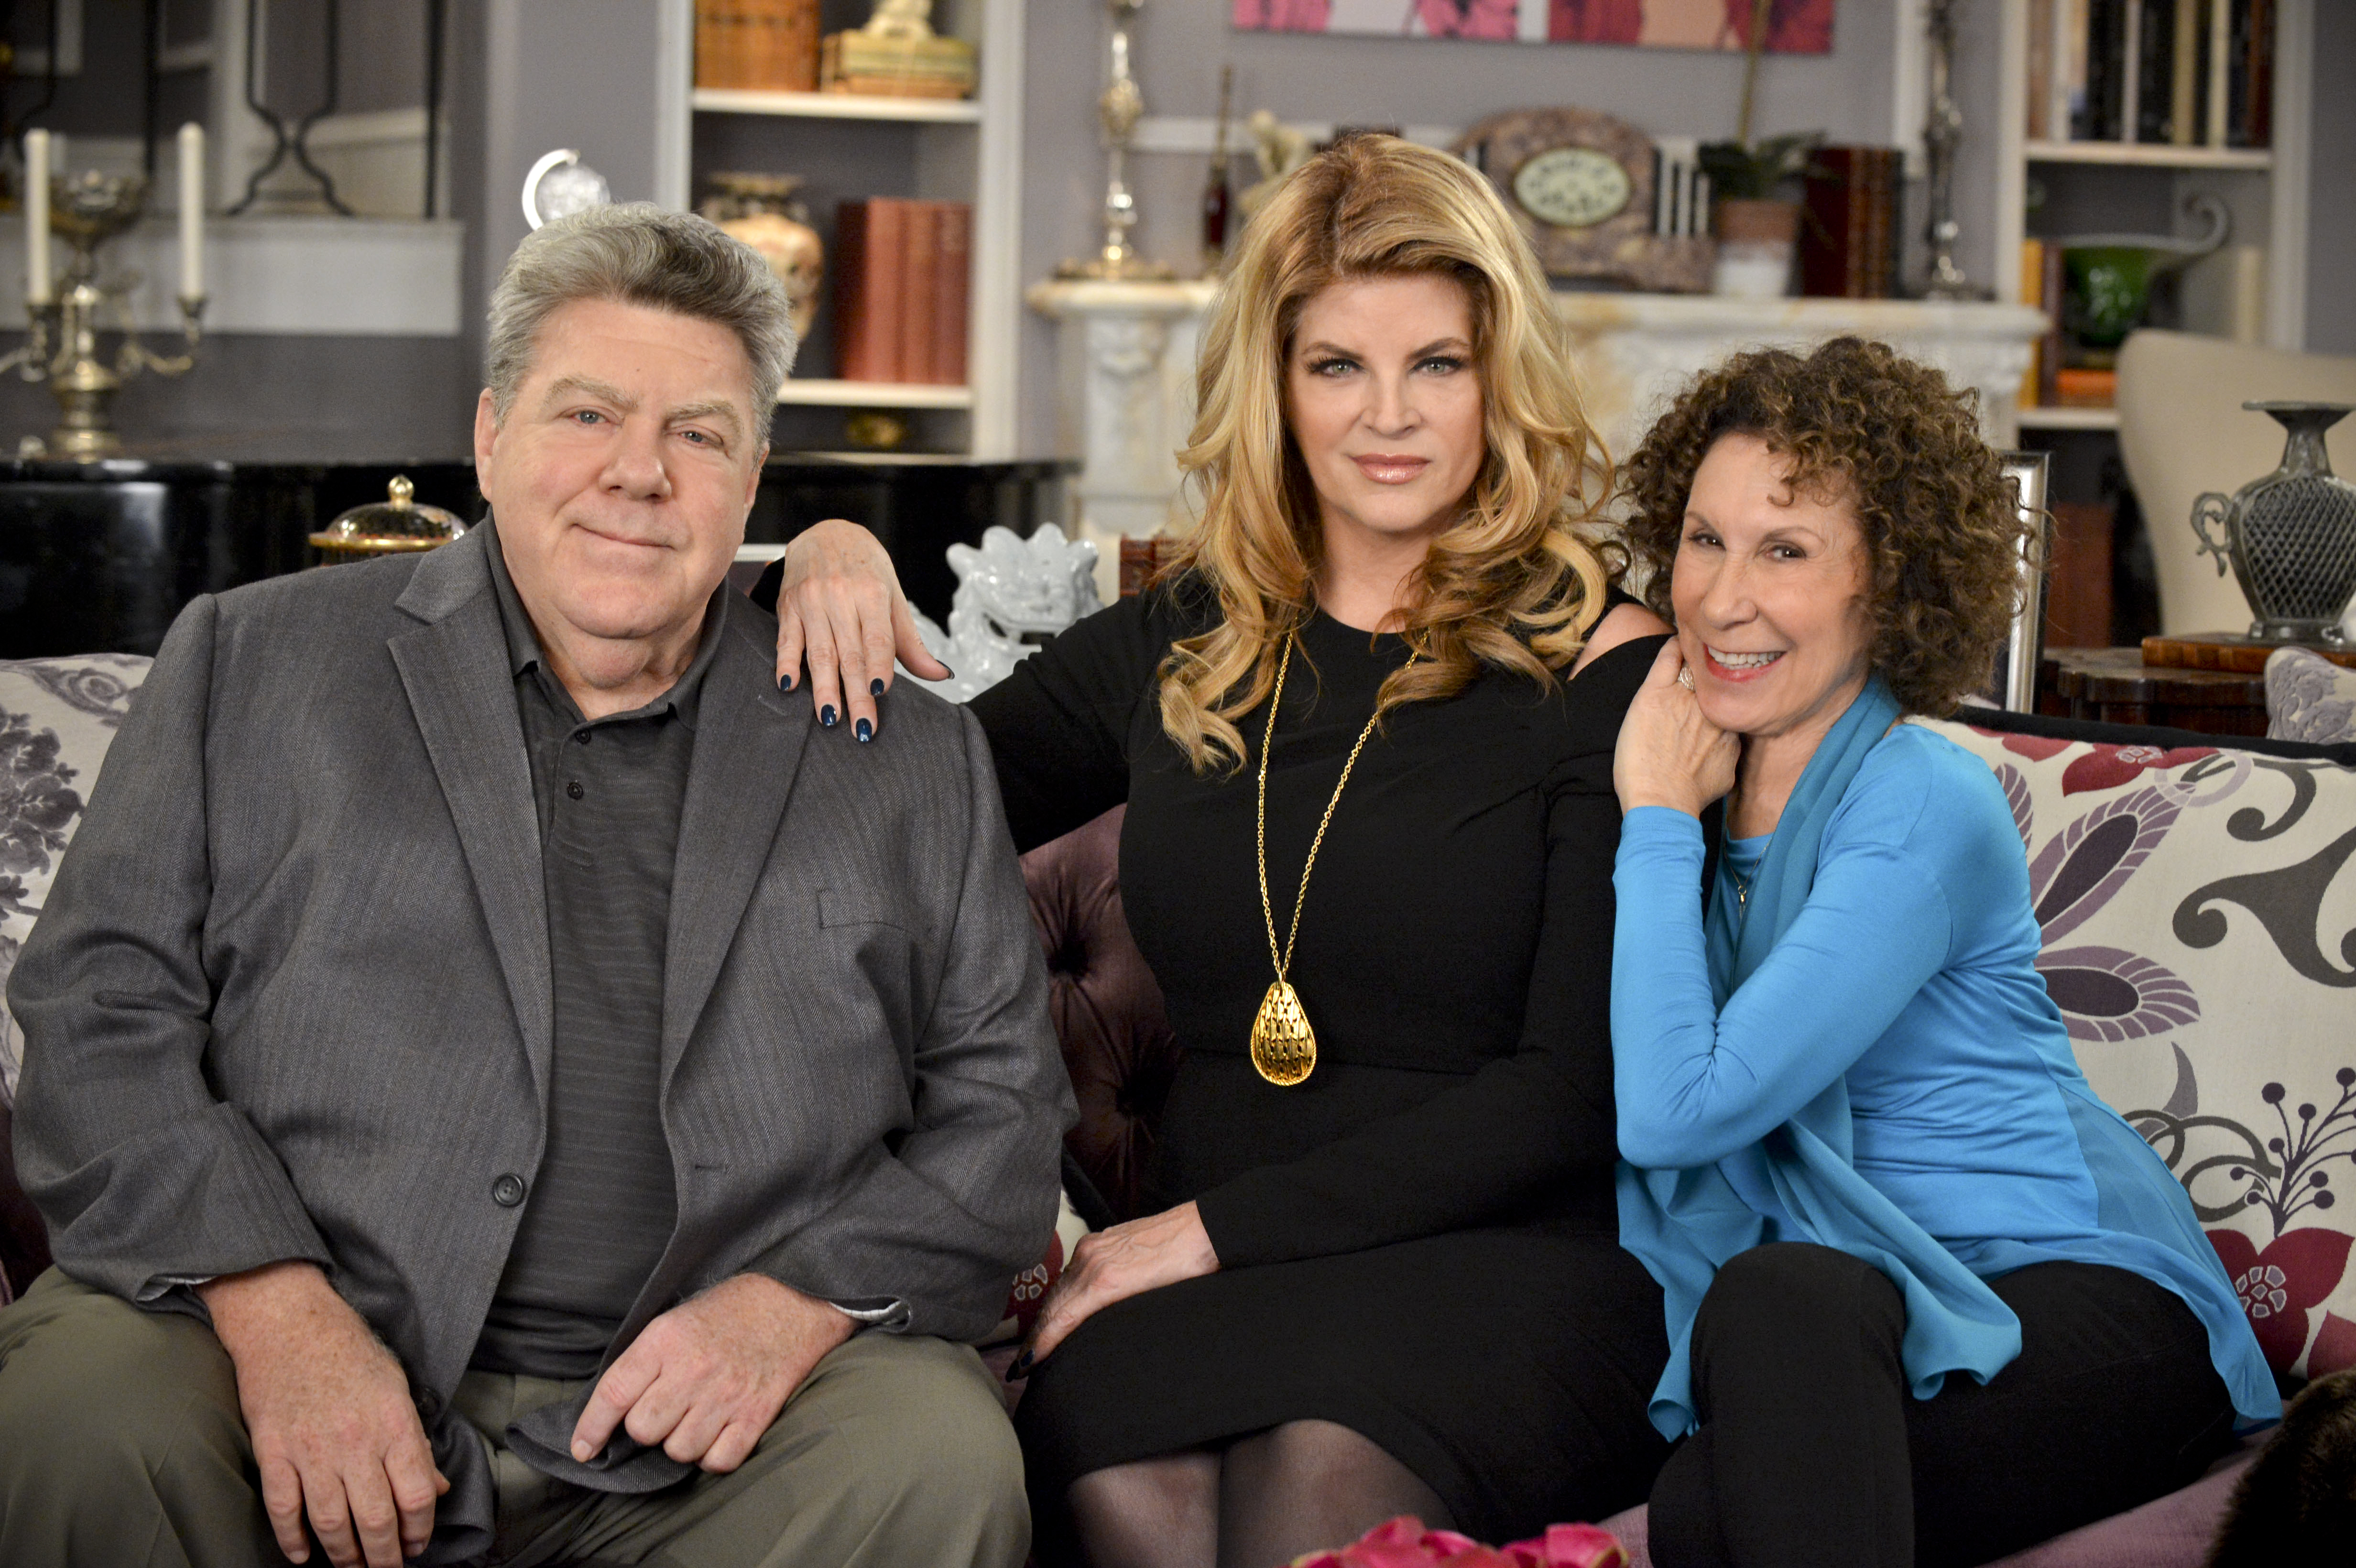 George Wendt, Kirstie Alley and Rhea Perlman